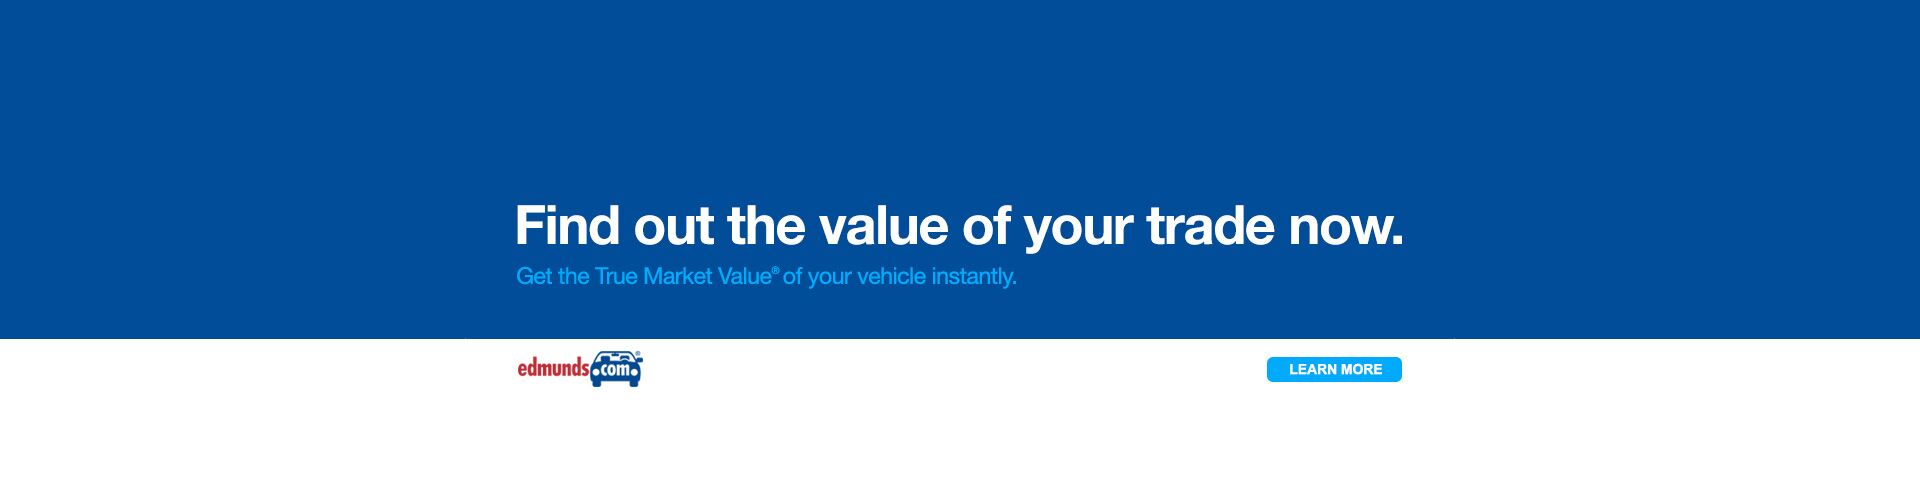 Value Your Vehicle for Trade-In